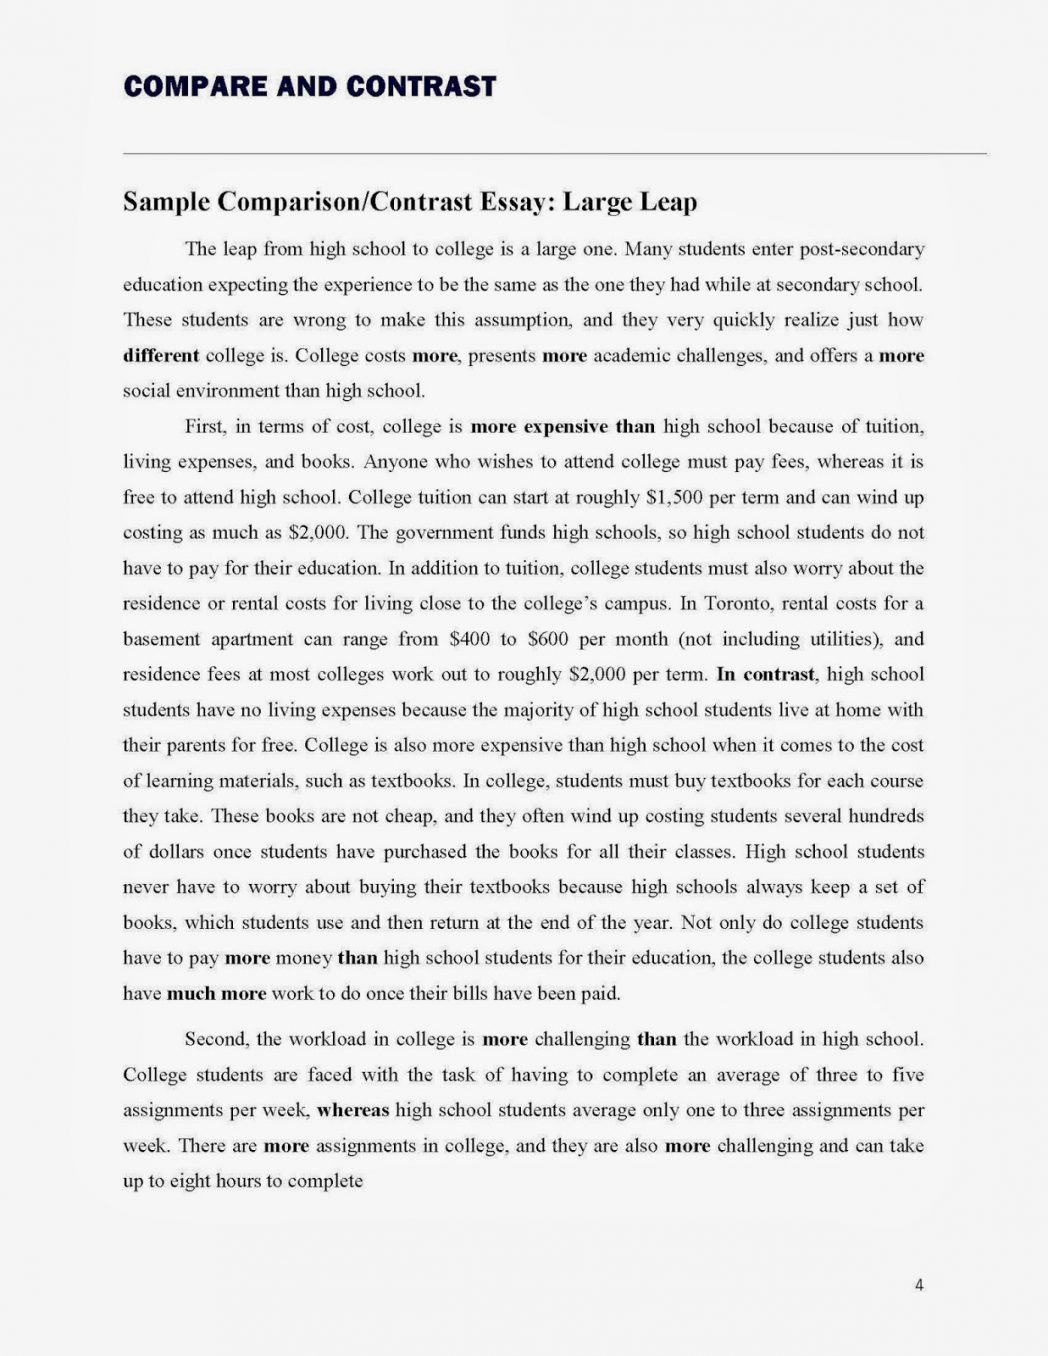 013 Essay Example Oedipus Rex Questions The Giver Topics Virginia Tech 1048x1356 Phenomenal Essays Reddit Prompts 2018 Sat Requirements Full